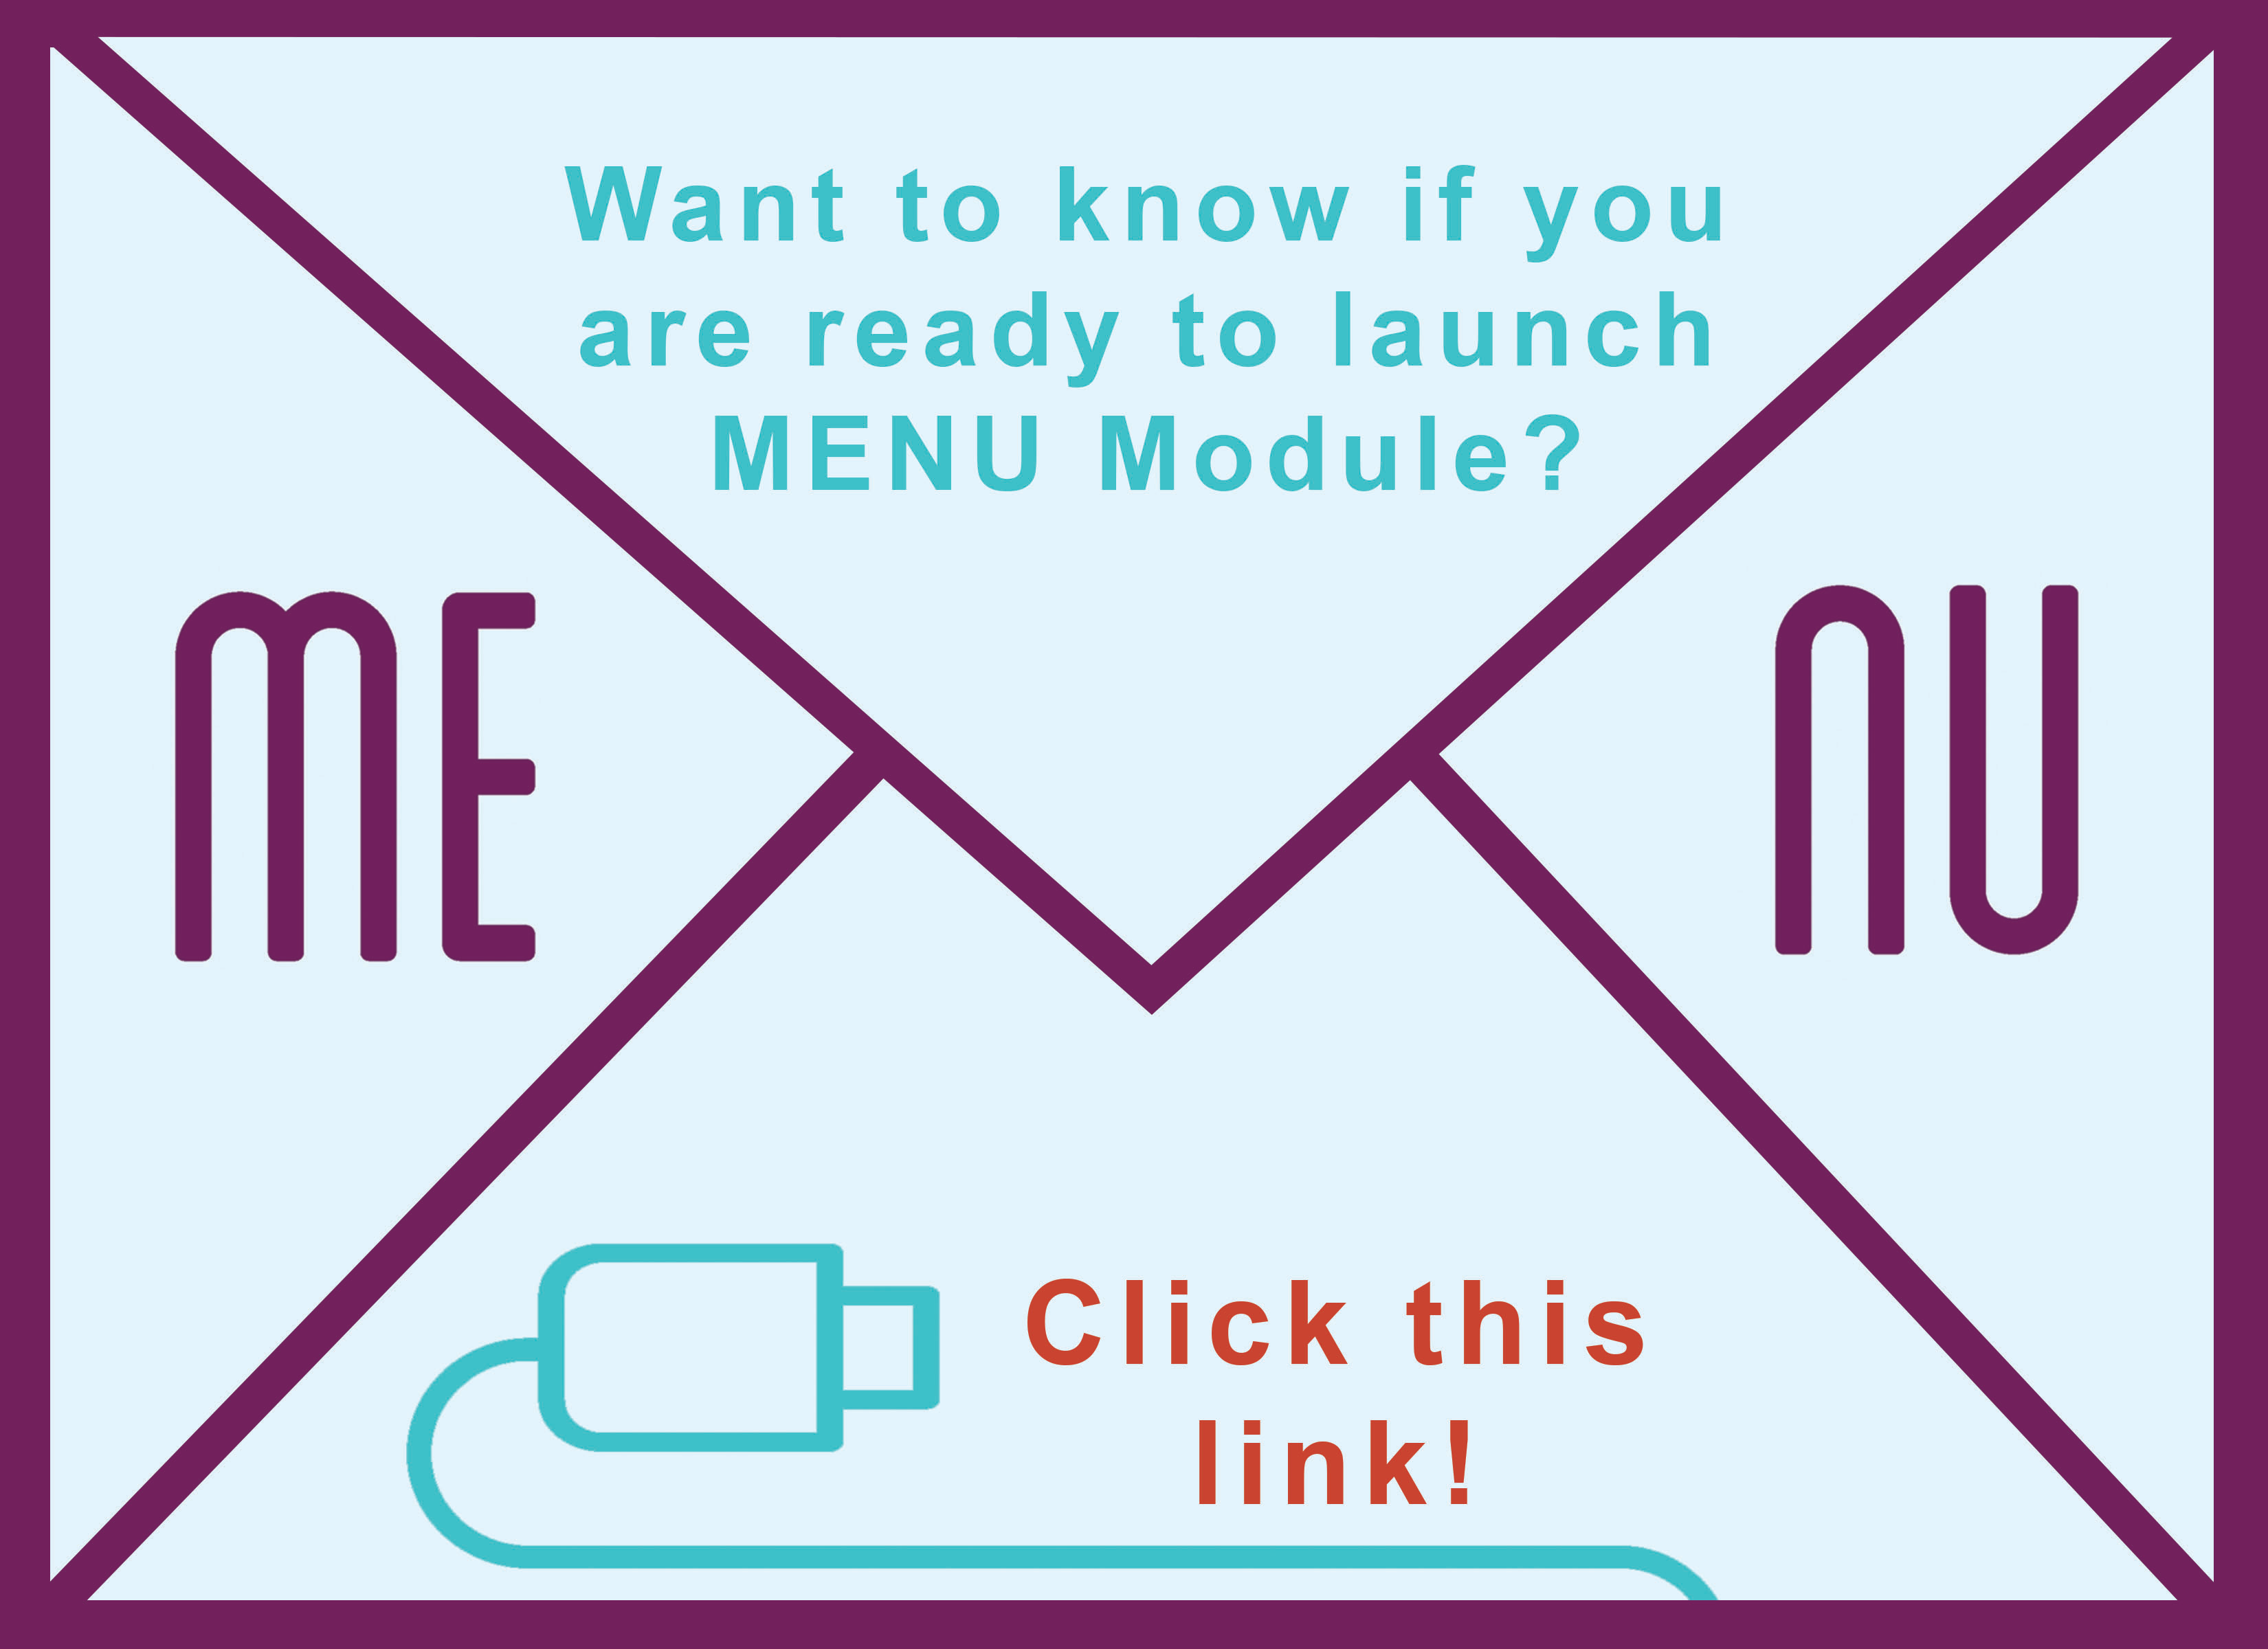 Tool: Are You Ready to Launch MENU Module?